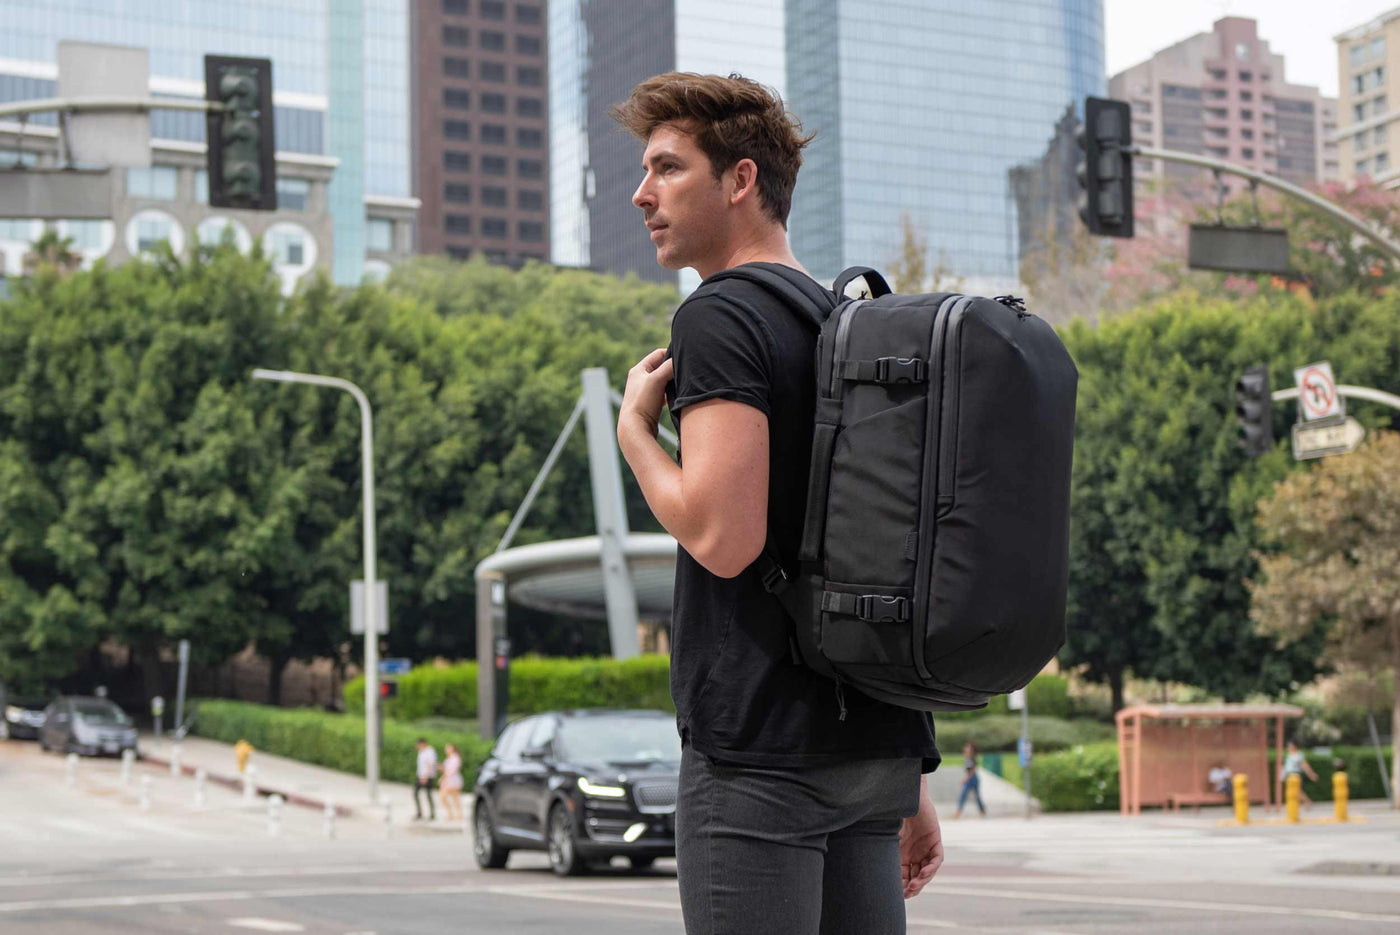 TRMNL Travel Pack - The All-In-One Travel Backpack for the Modern Professional